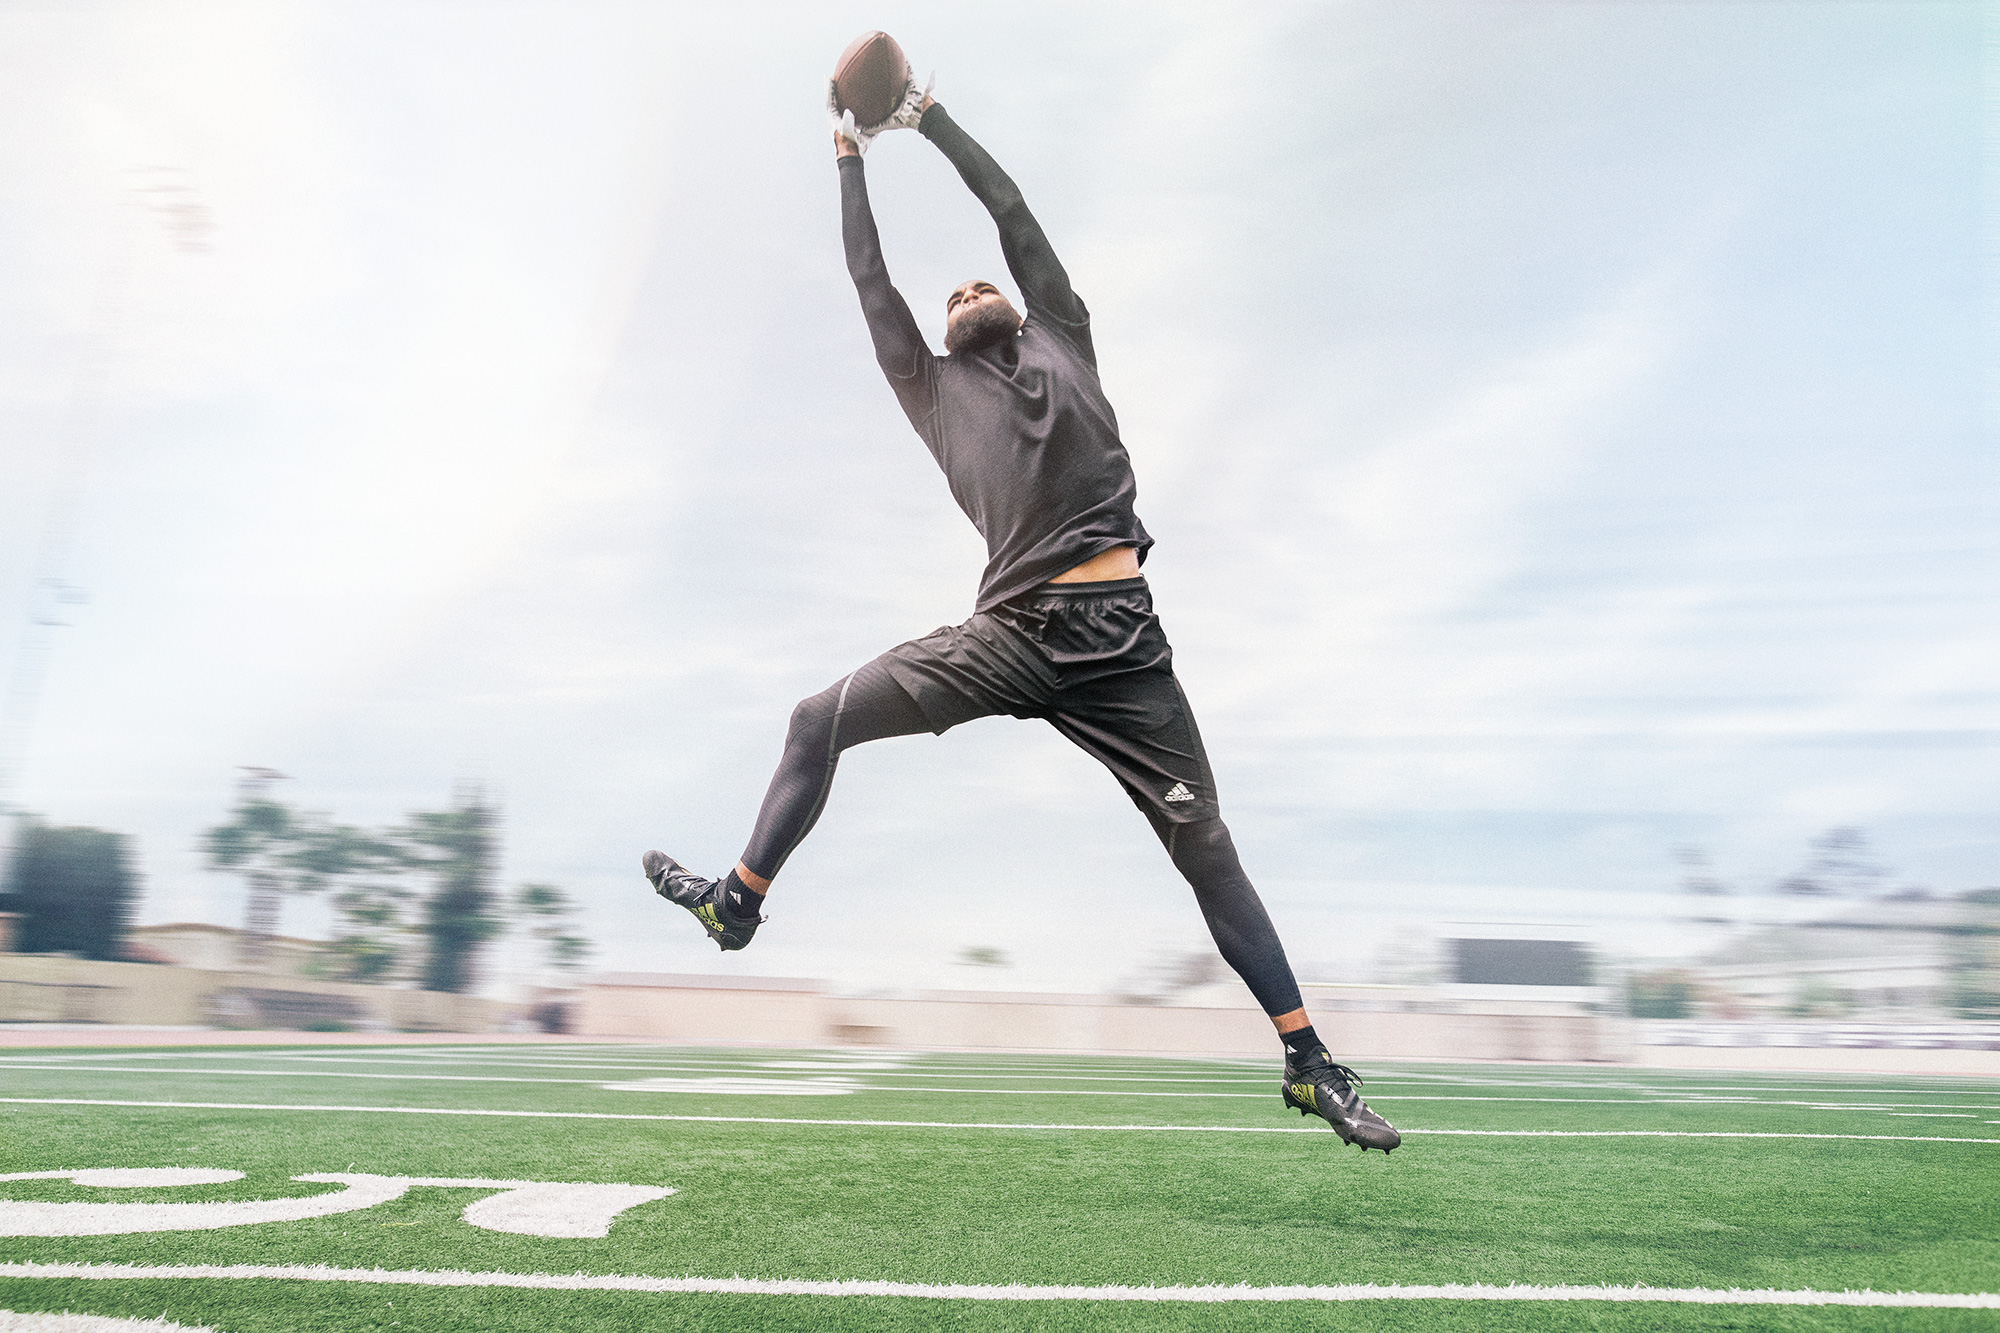 keenan allen, Wide Receiver, catching a pass. Photographed for Adidas Football on Location in LA.